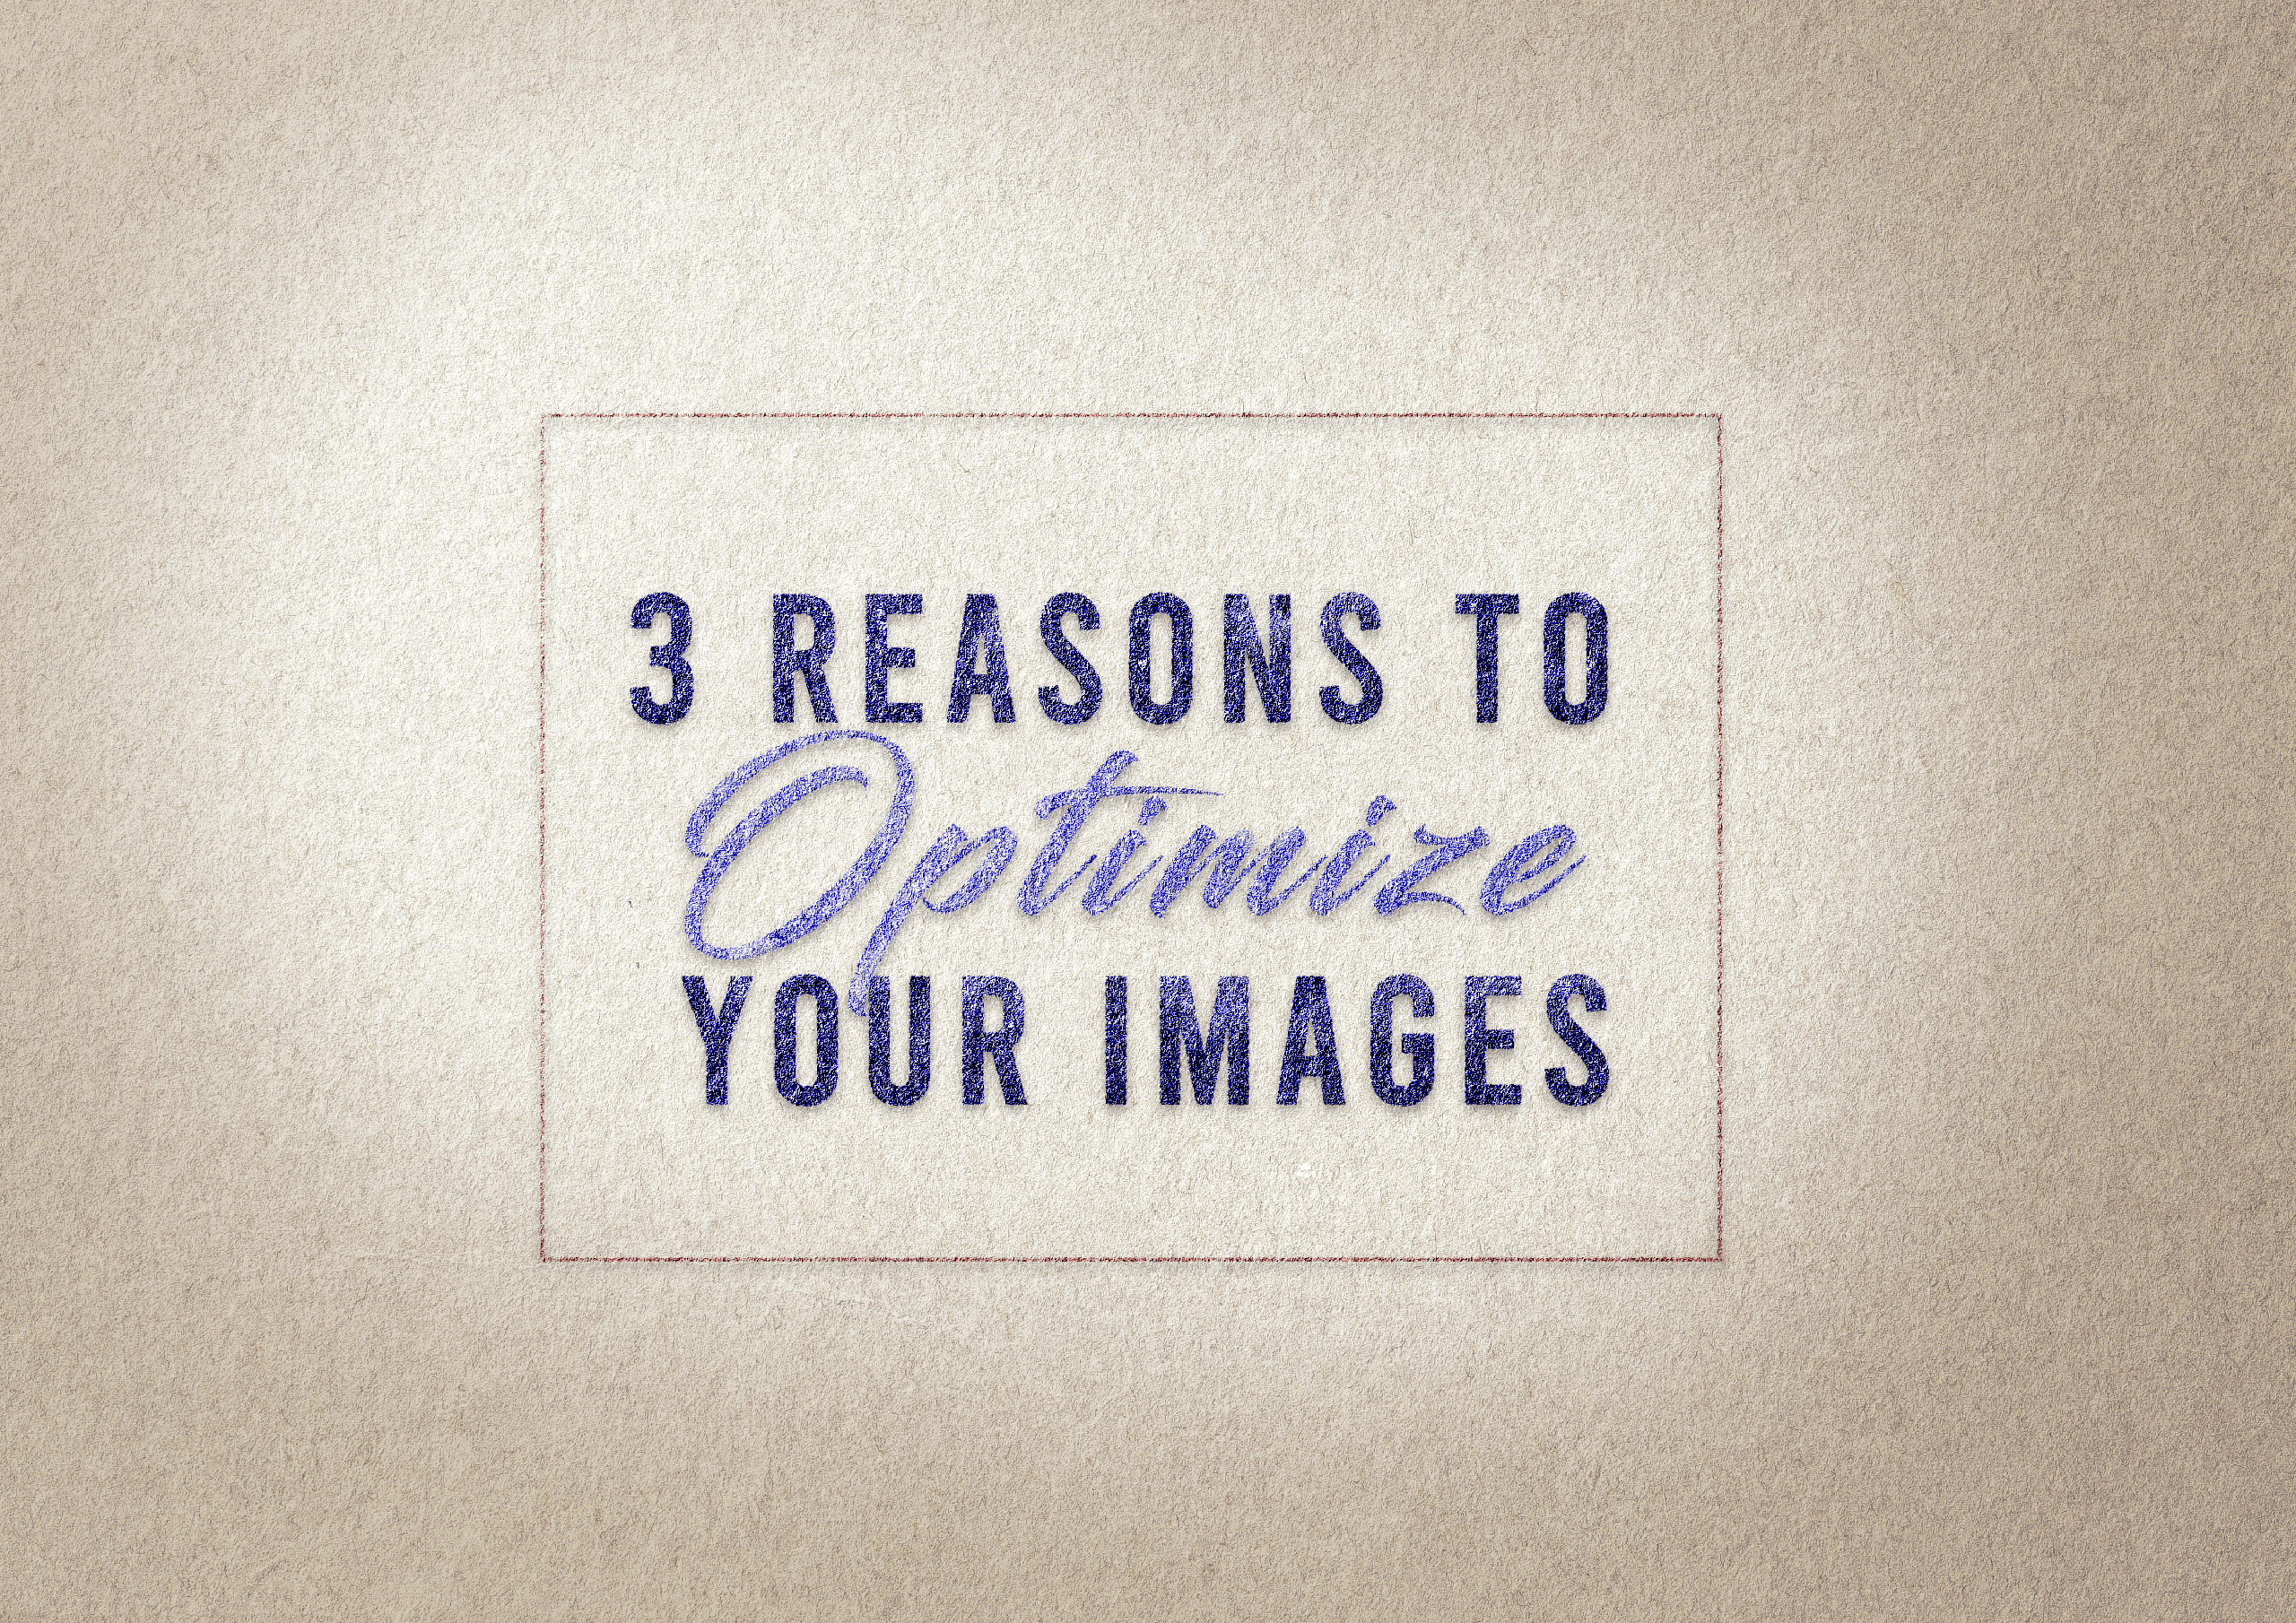 3 Reasons To Optimize Your Images